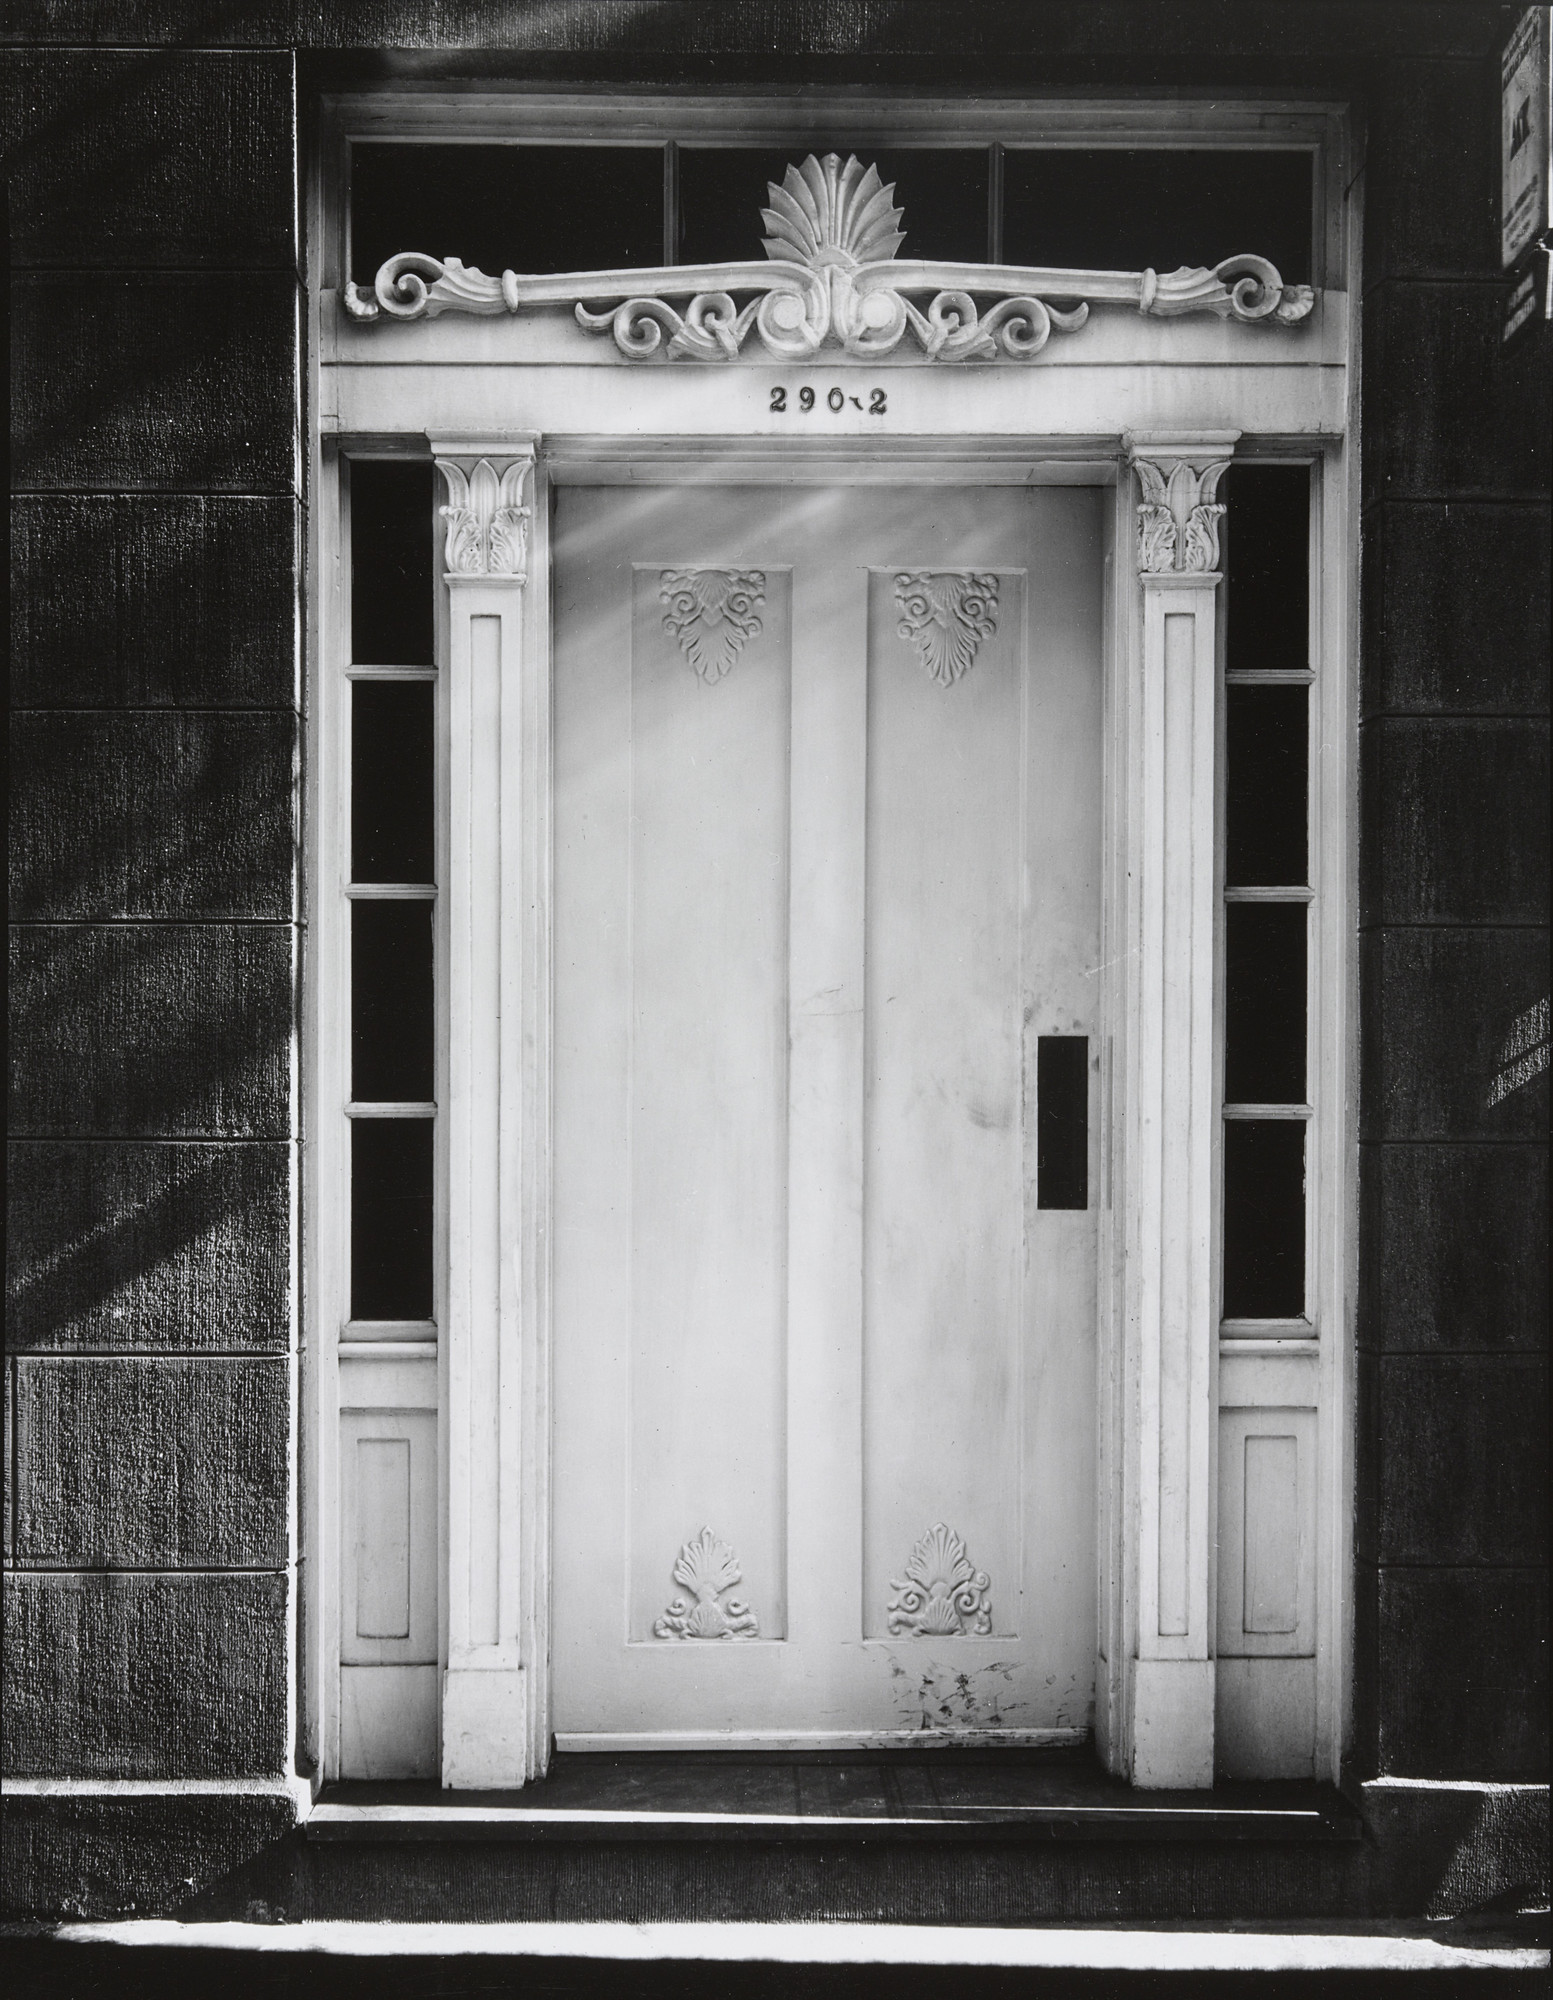 Walker Evans. Greek Revival Doorway, New York City. 1934